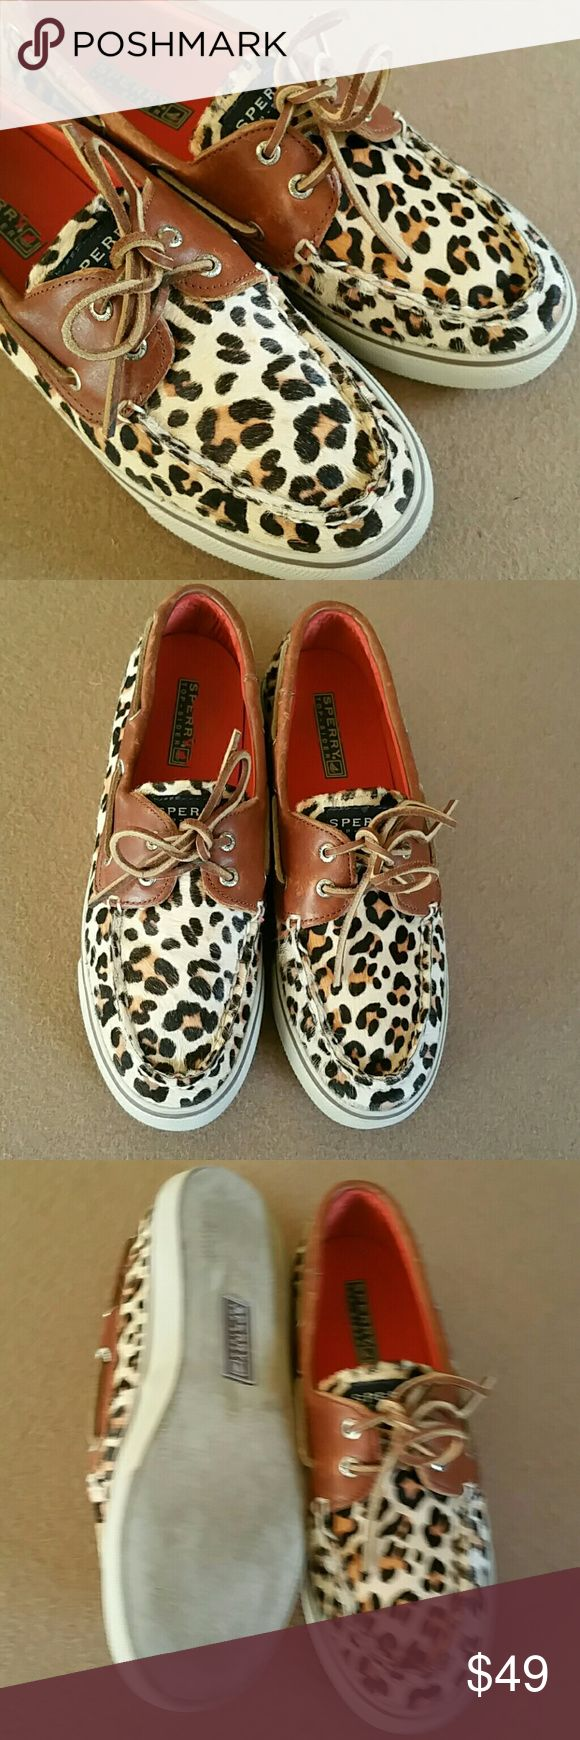 JUST IN. Calf hair Sperry TopSiders. Size 8 Very good condition. Ladies animal print calf hair with brown leather trim and laces. Size 8. No wear or flaws to note. Sperry Top-Sider Shoes Flats & Loafers